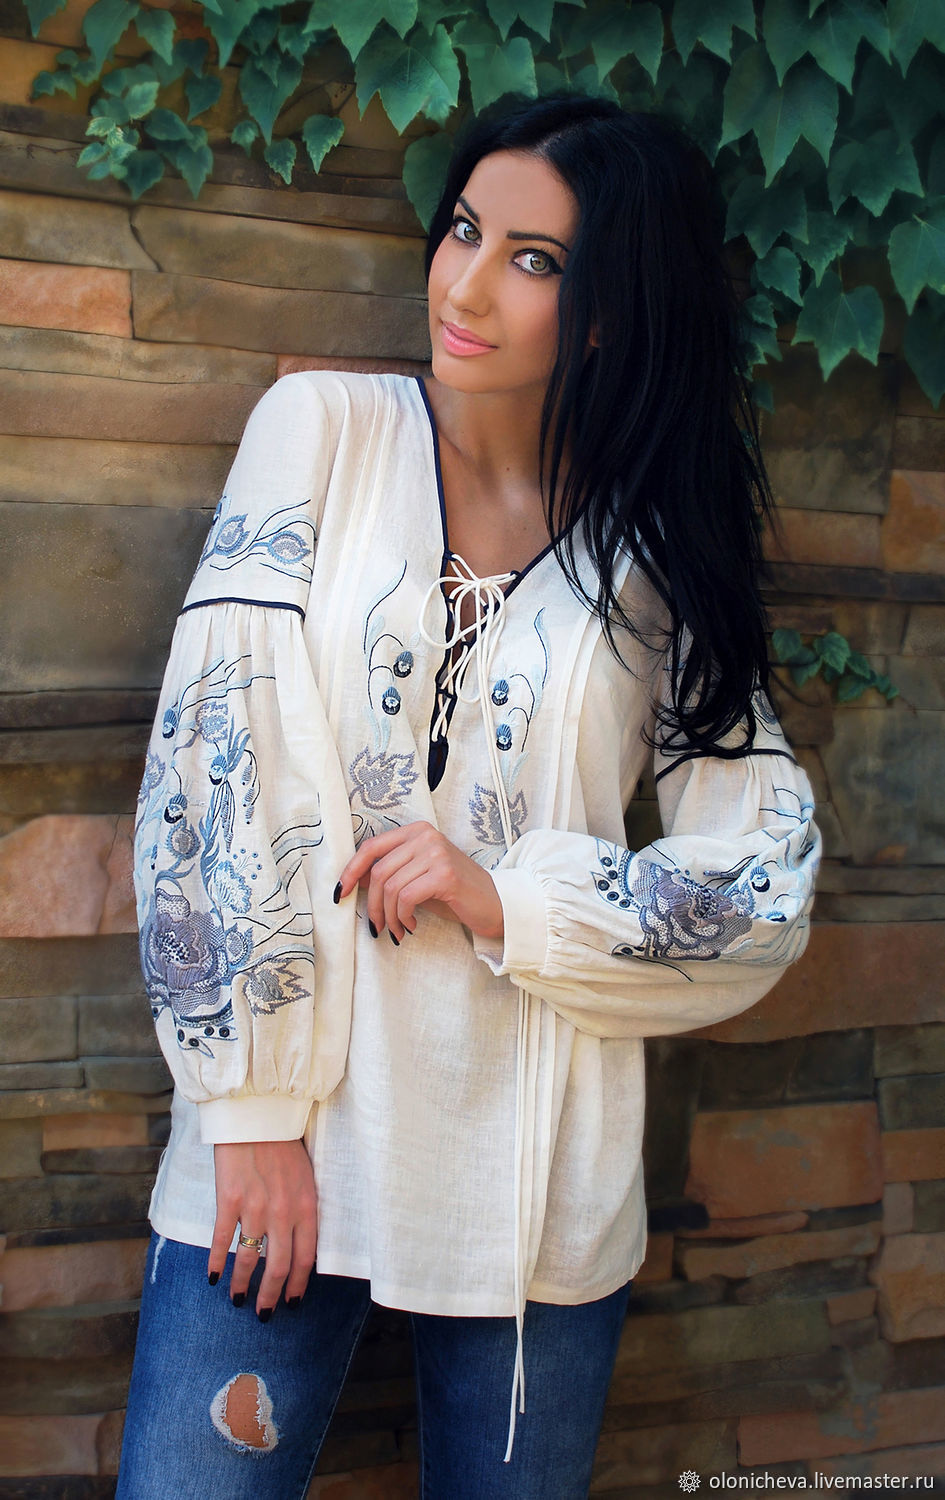 Embroidered blouse, embroidered shirt 'Morning mint' blouse with embroidery, Blouses, Vinnitsa,  Фото №1